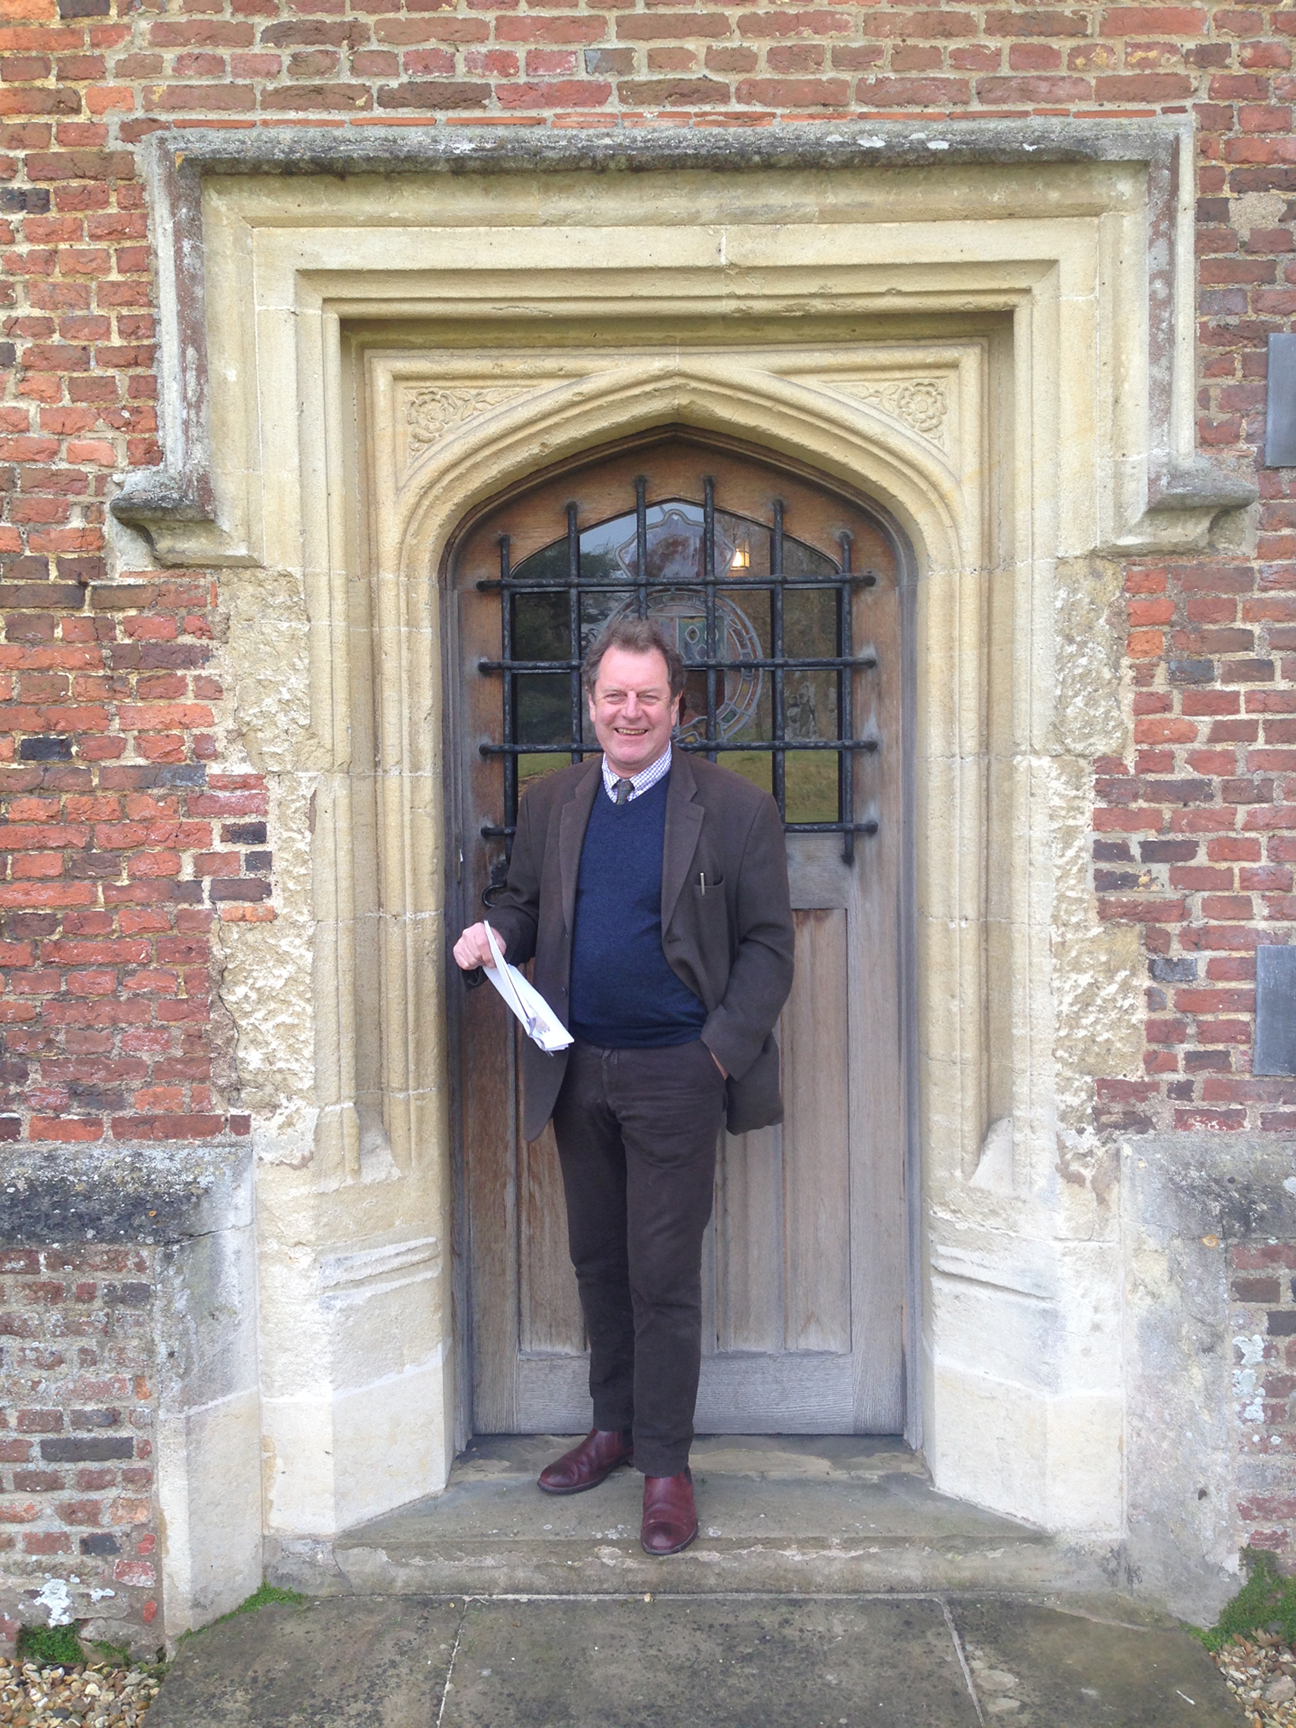 Trevor Proudfoot standing in a historic doorway. Image courtesy of Lewis Proudfoot.